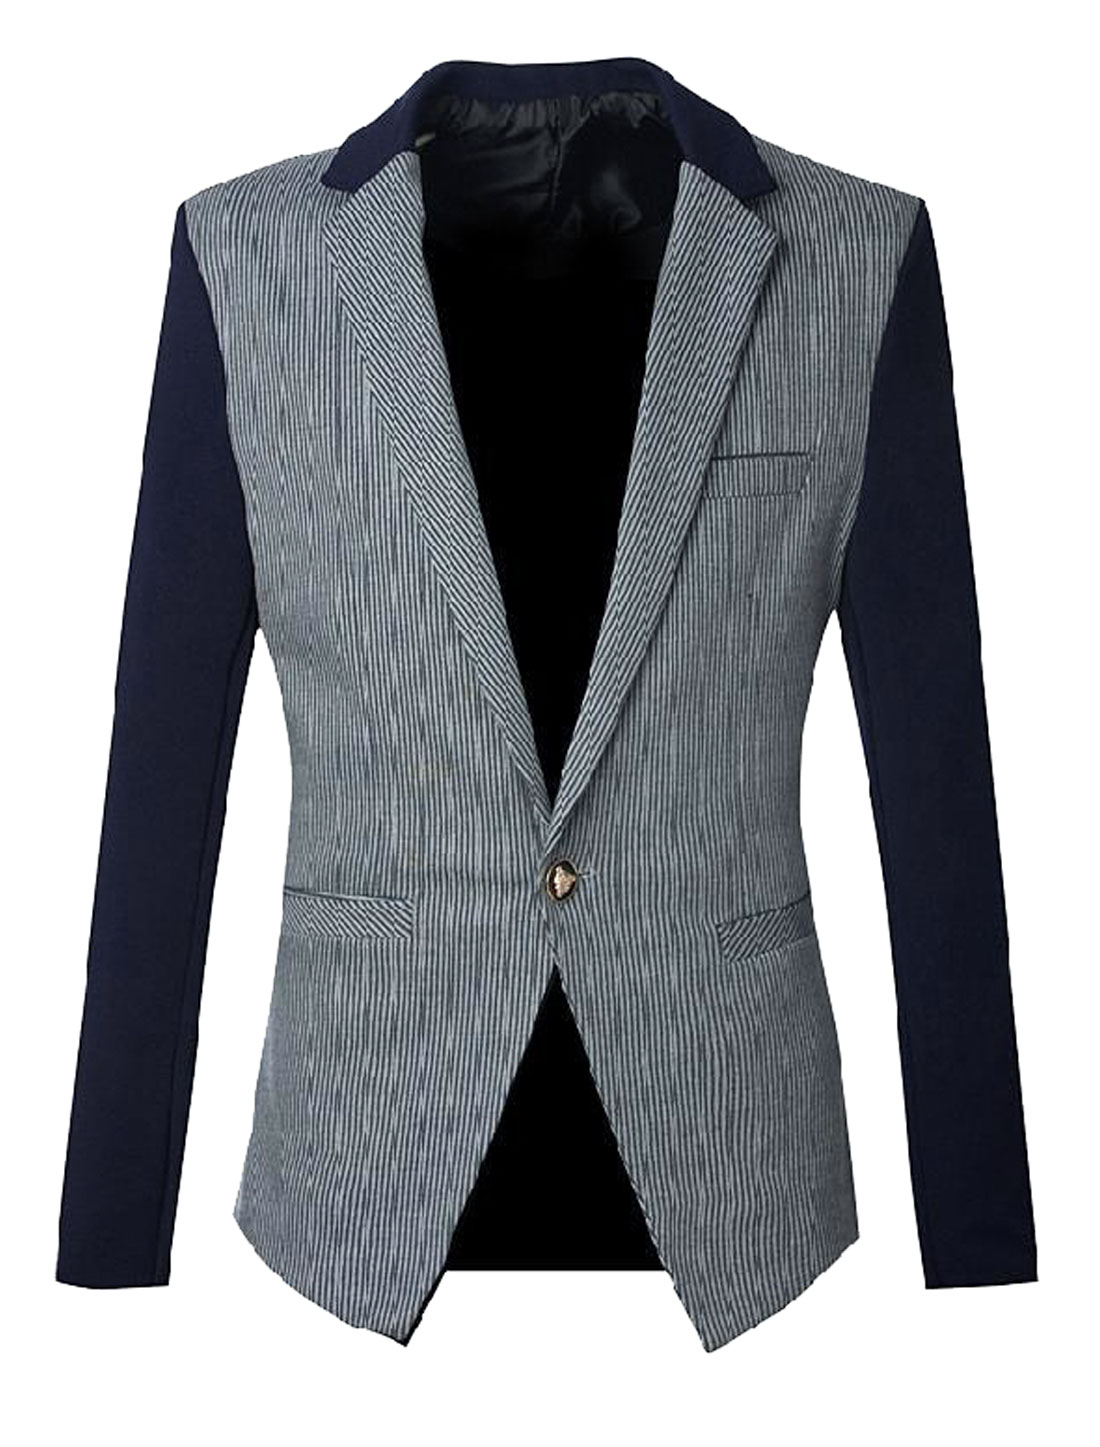 Men Notched Lapel Interior Pocket Slim Fit Leisure Blazer Navy Blue Gray S